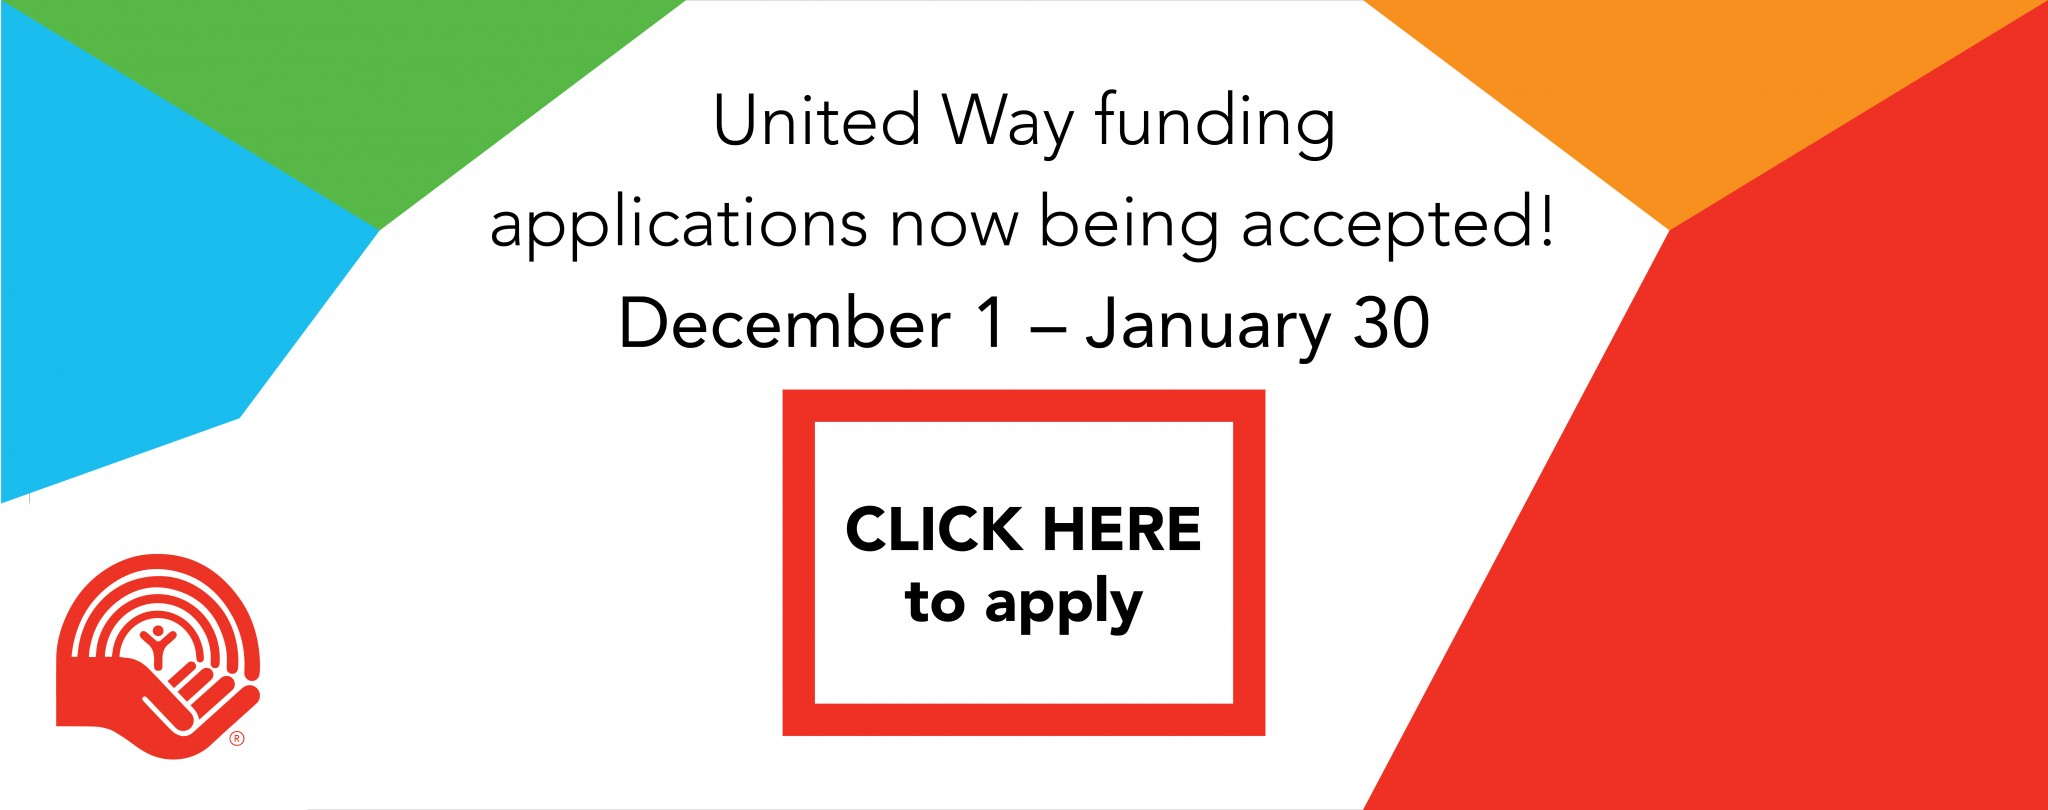 funding-application-pop-up-01